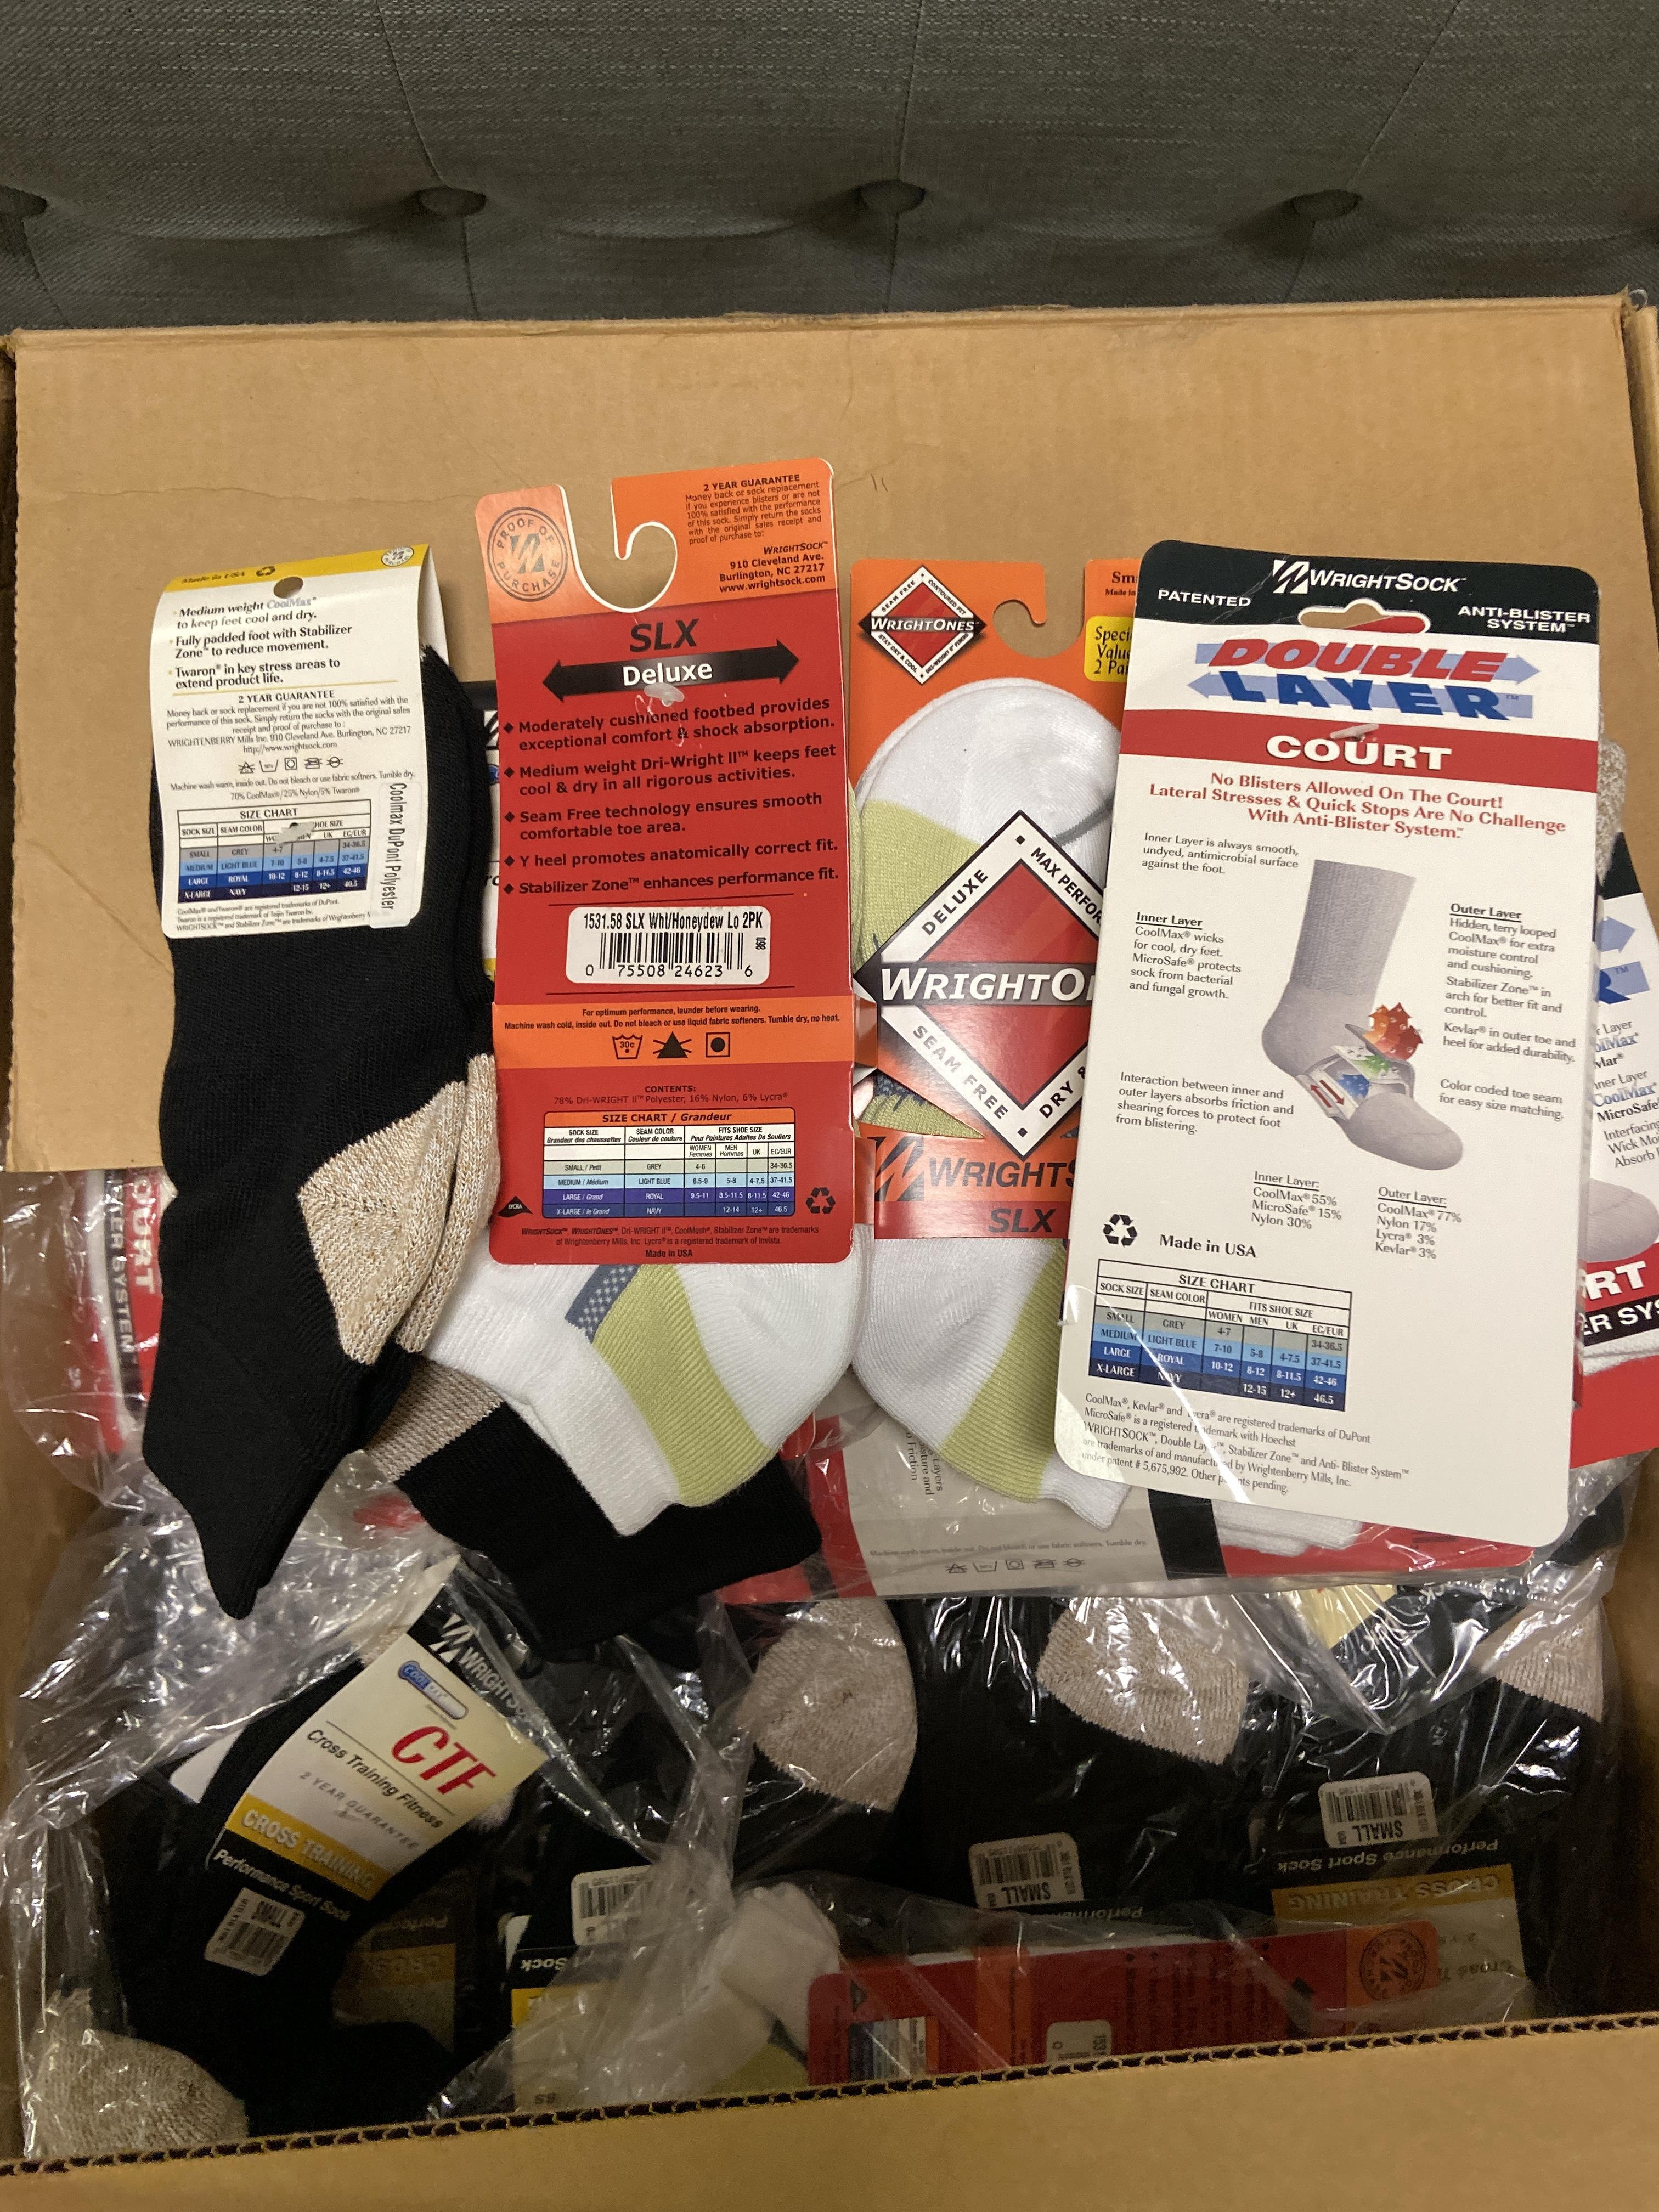 250+ packs of New Socks, Wrightsocks Various Styles, Various Colors - Image 2 of 2